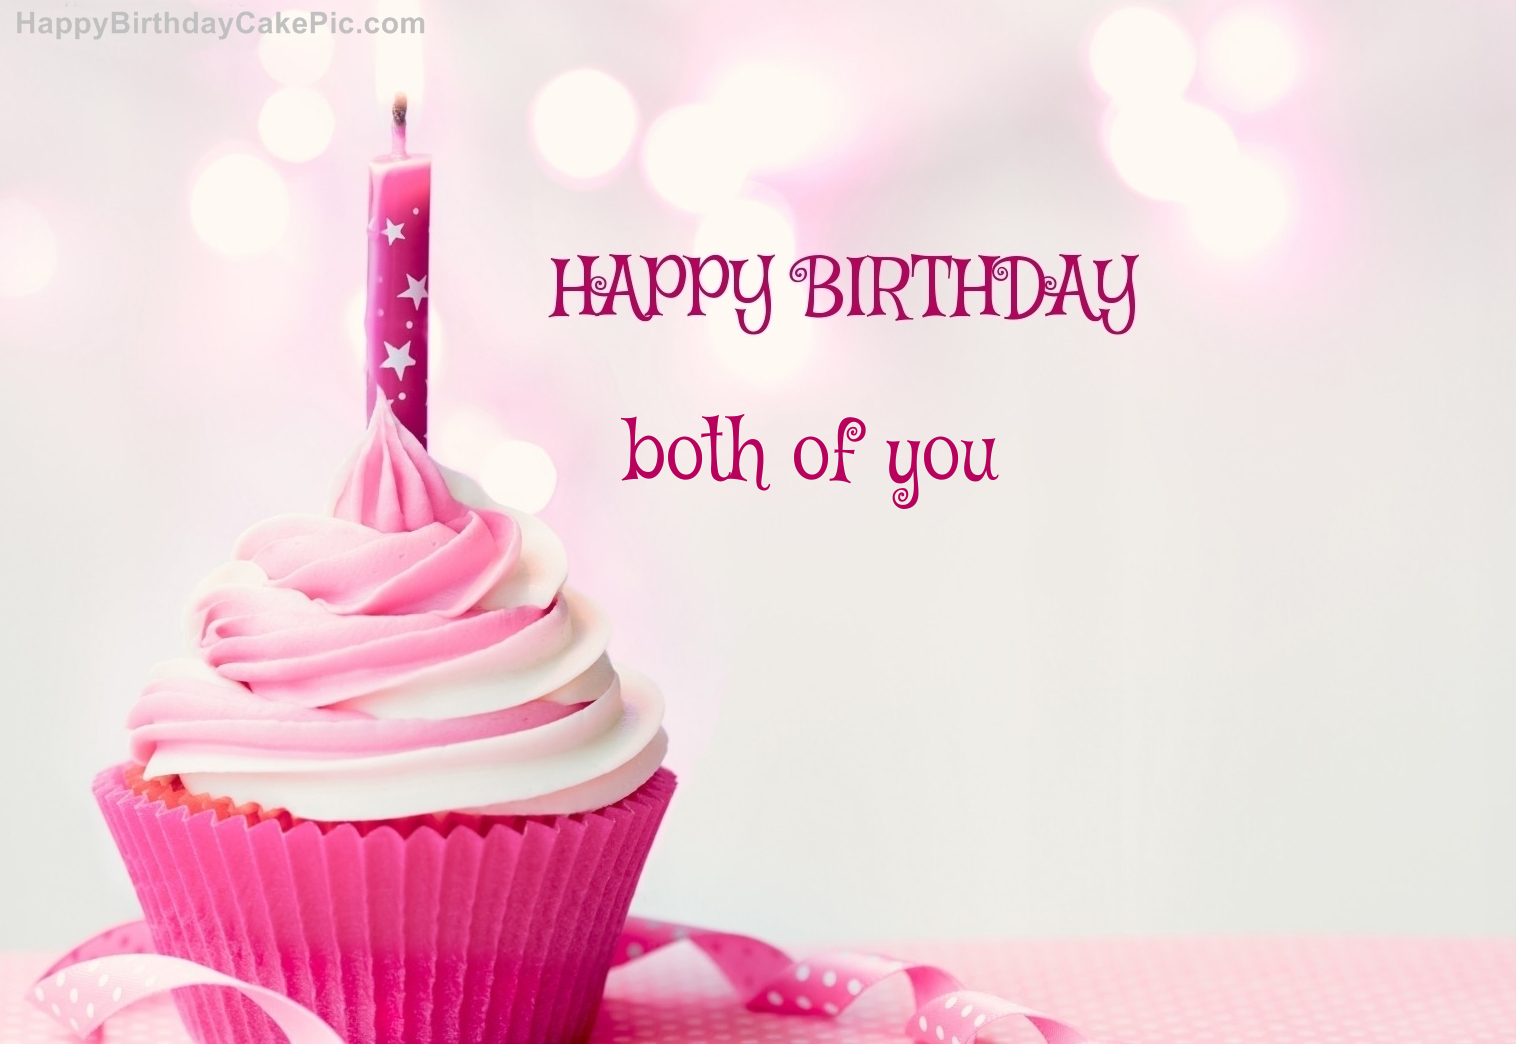 Happy Birthday Cupcake Candle Pink Cake For Both Of You Happy Birthday To Both You Wishes